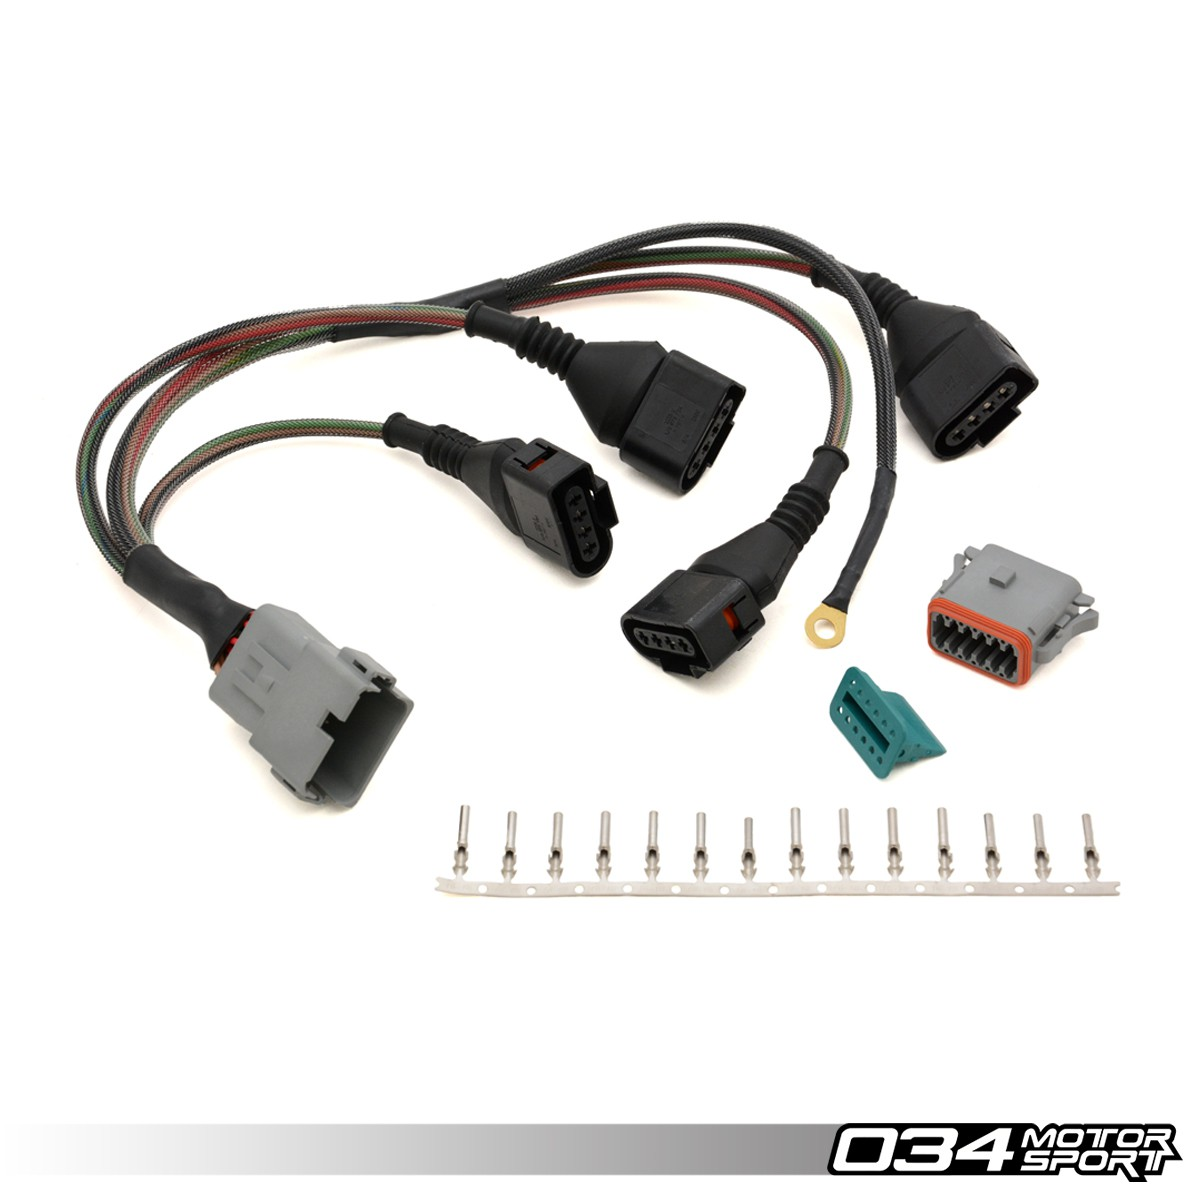 repair update harness audi volkswagen 18t with 4 wire coils 034motorsport 034 701 0004 2 repair update harness, audi volkswagen 1 8t with 4 wire coils wiring harness repair connectors at couponss.co